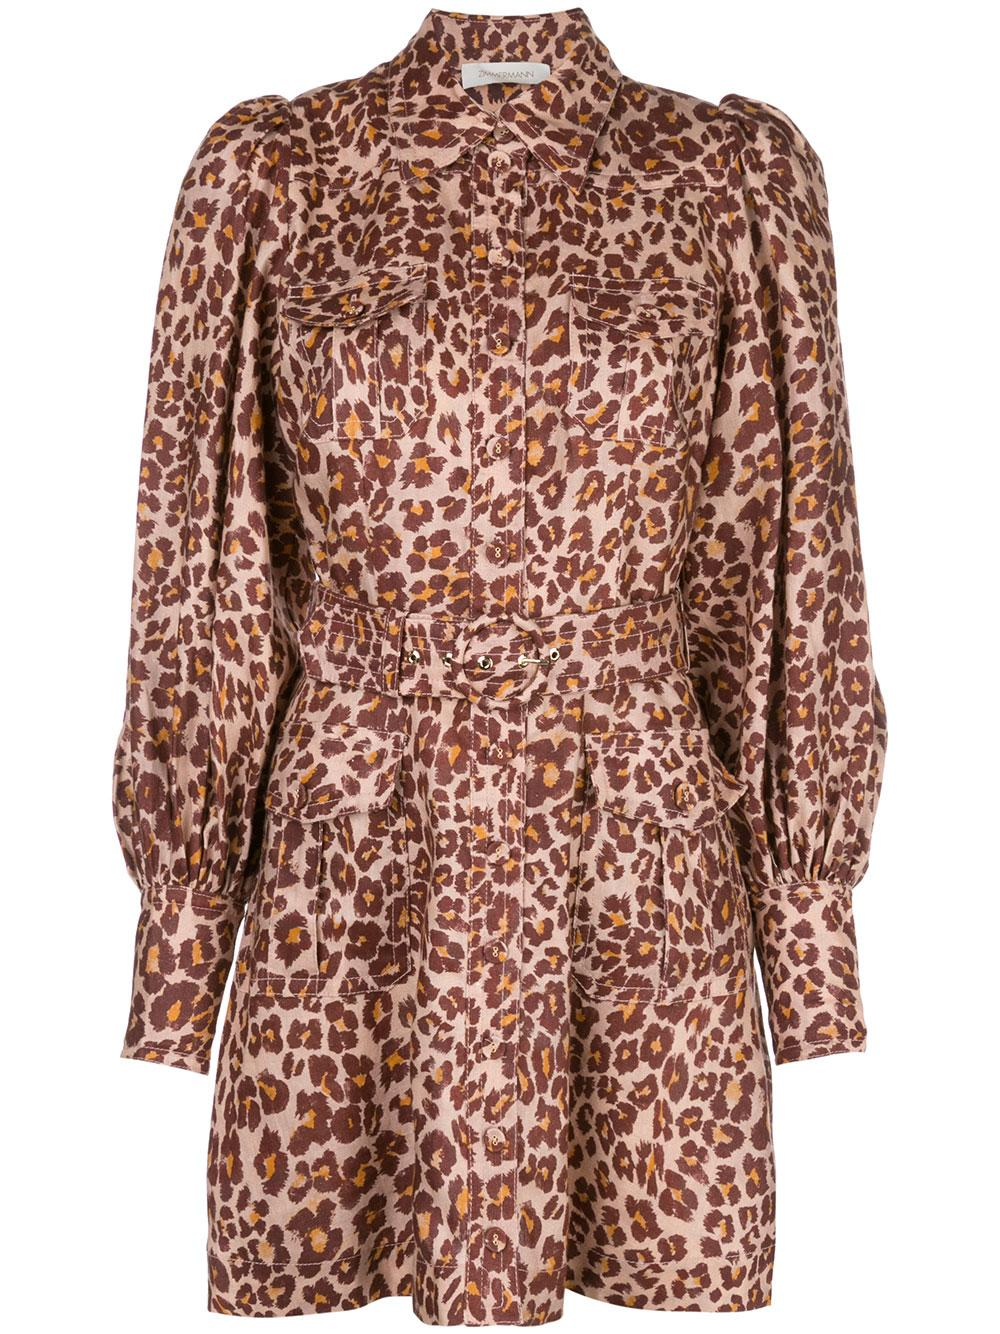 Resistance Safari Shirt Dress